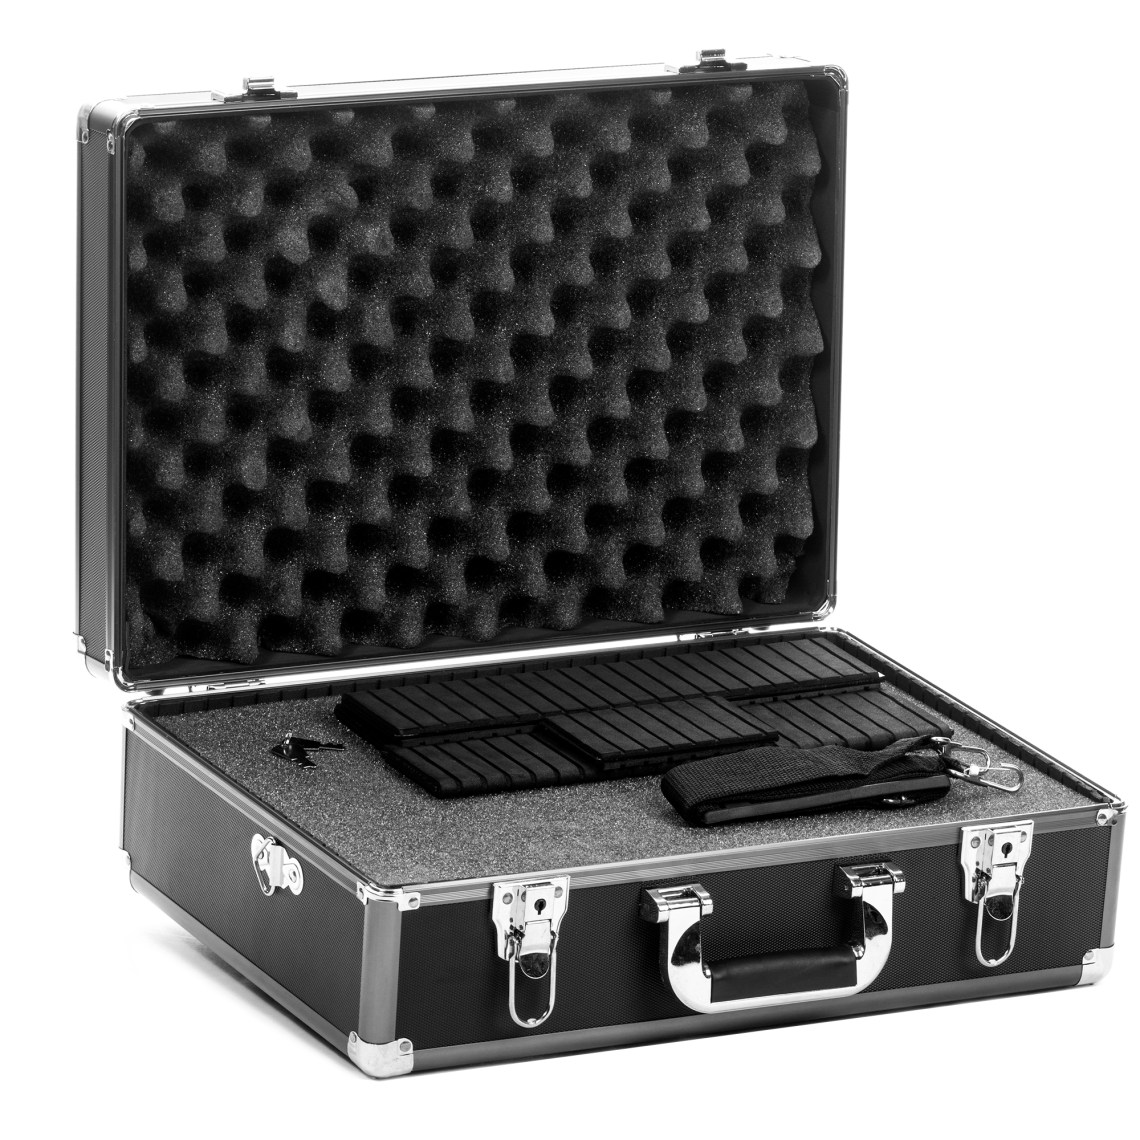 Focus knows that protecting your camera\, lenses and other gear is essential. Especially if you're going to travel with it from shoot to shoot. That's why we created this large equipment case that is perfect for everyone. How do we accommodate for the myriad of different kits out there? Simple\, we made this case fully customizable!Customized & Personalized FitThe interior foam compartment is expertly sliced into small squares that are easily removed. Space out your gear as you see fit\, remove the necessary foam material\, and you're left with a custom fit for every piece of equipment. In addition to the foam\, the entire interior wall structure has built-in slots. These are for the included hard dividers\, giving you even more variations to choose from. You get 2 long dividers\, 1 medium and 2 short.Strength & ProtectionThis hard case is built to take some the bangs and bumps of everyday life while protecting your valuable gear. The aluminum alloy frame features high impact-resistant ABS plastic side panels\, and the corners are steel reinforced. The interior of the lid features a pointed foam panel for soft yet sturdy protection for the exposed contents inside. Finally\, dual locking metal latches keep the case closed during transport.Features & SpecificationsAluminum Alloy Frame.High Impact-Resistant ABS Plastic Side Panels.Steel Corner Reinforcements.Dual Locking Metal Latches.Customizable Foam Interior.Slotted Interior Walls w/ Dividers.2 Long Dividers - 12 1/2\